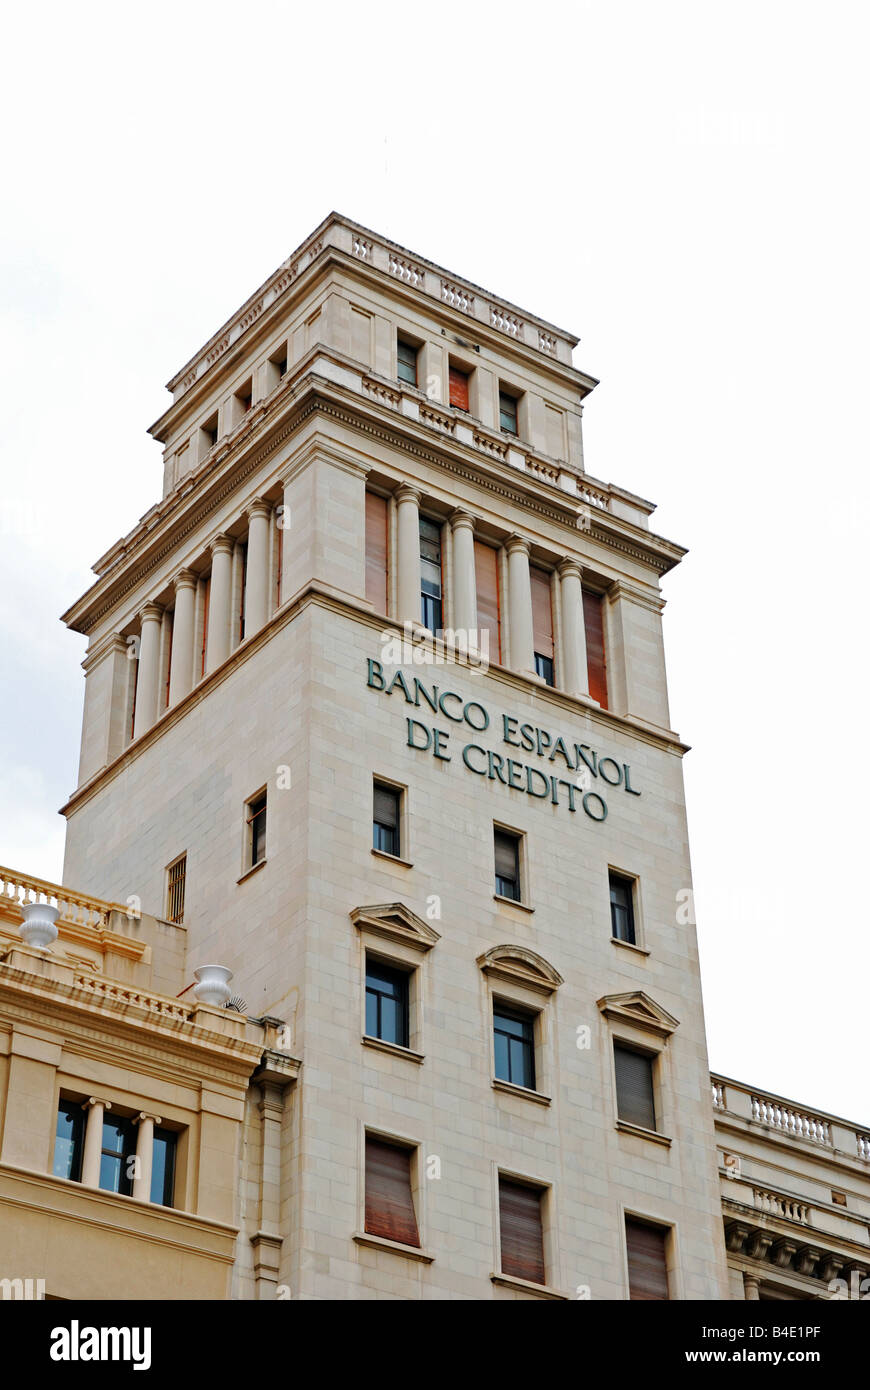 banco espanol in barcelona, spain - Stock Image